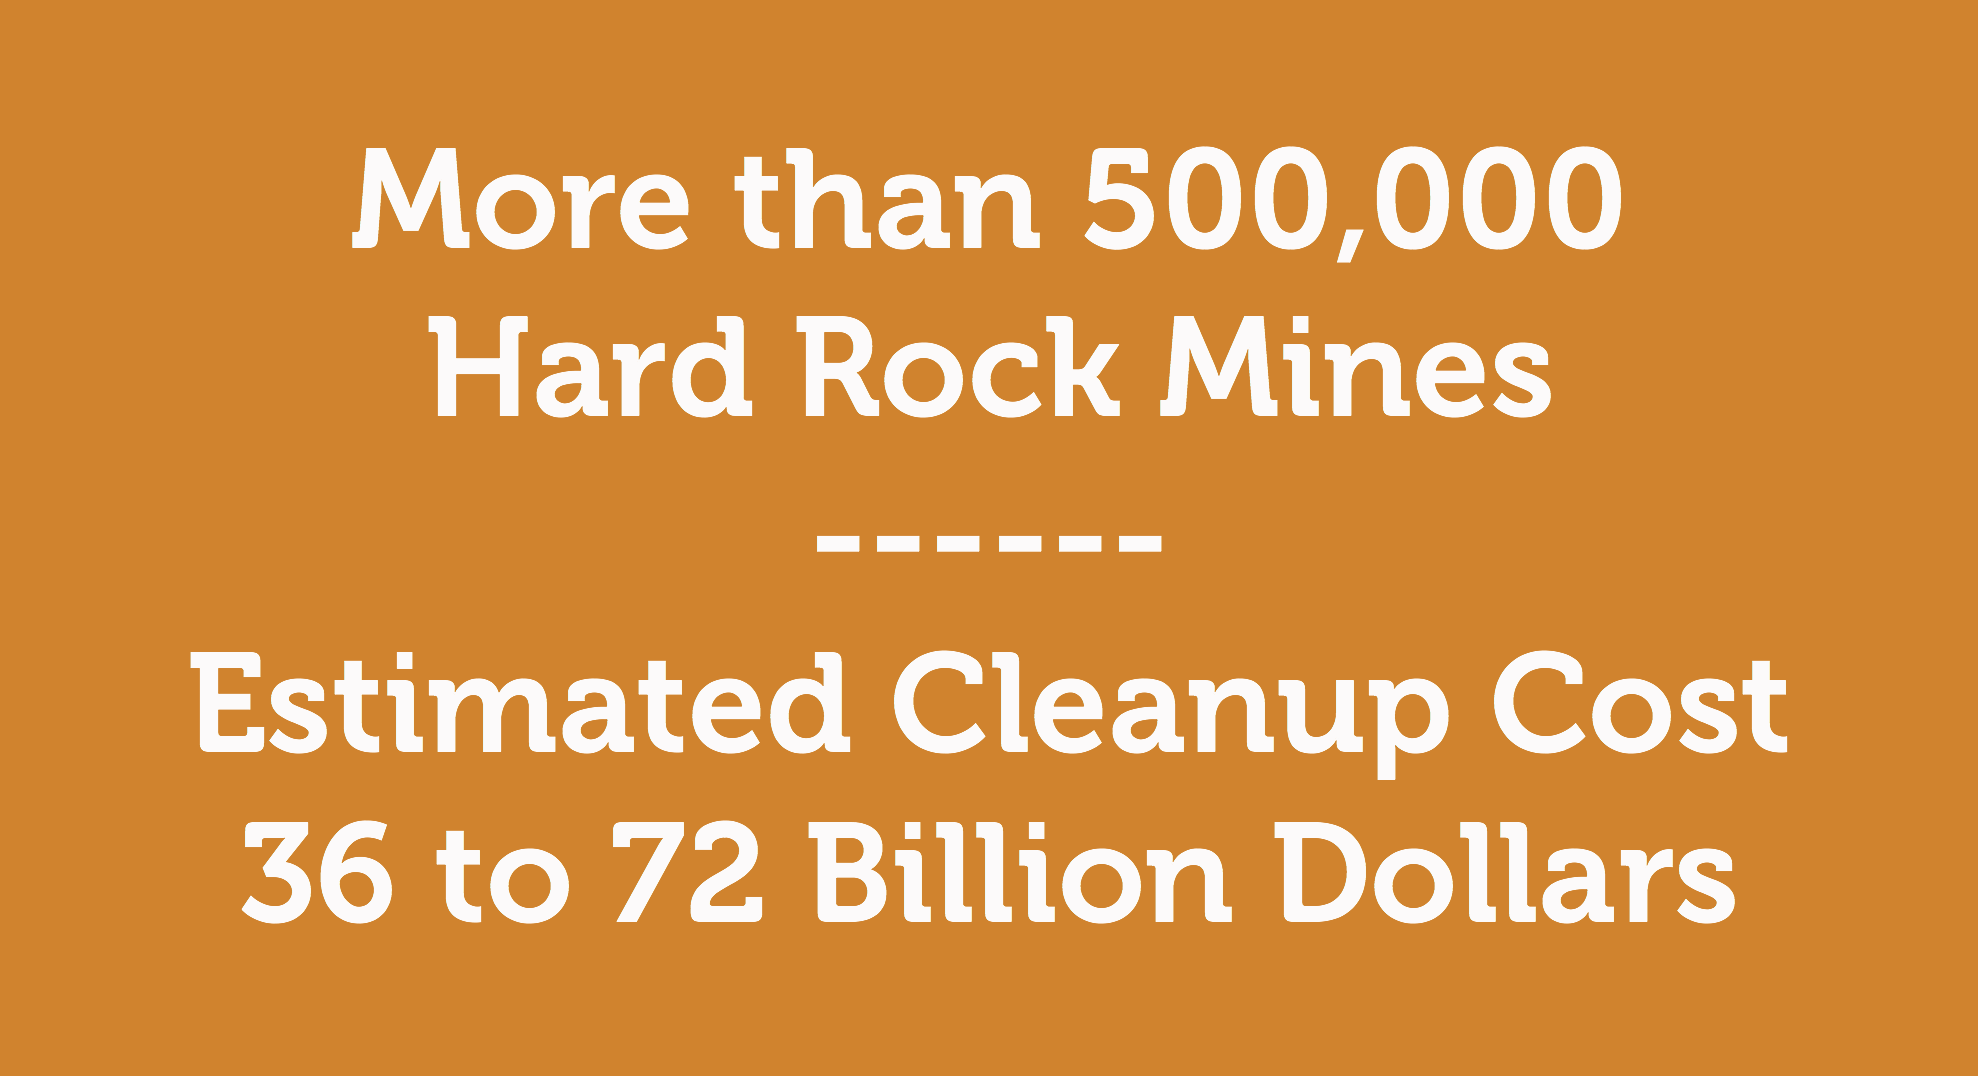 More than 500,000 Hard Rock Mines in the West